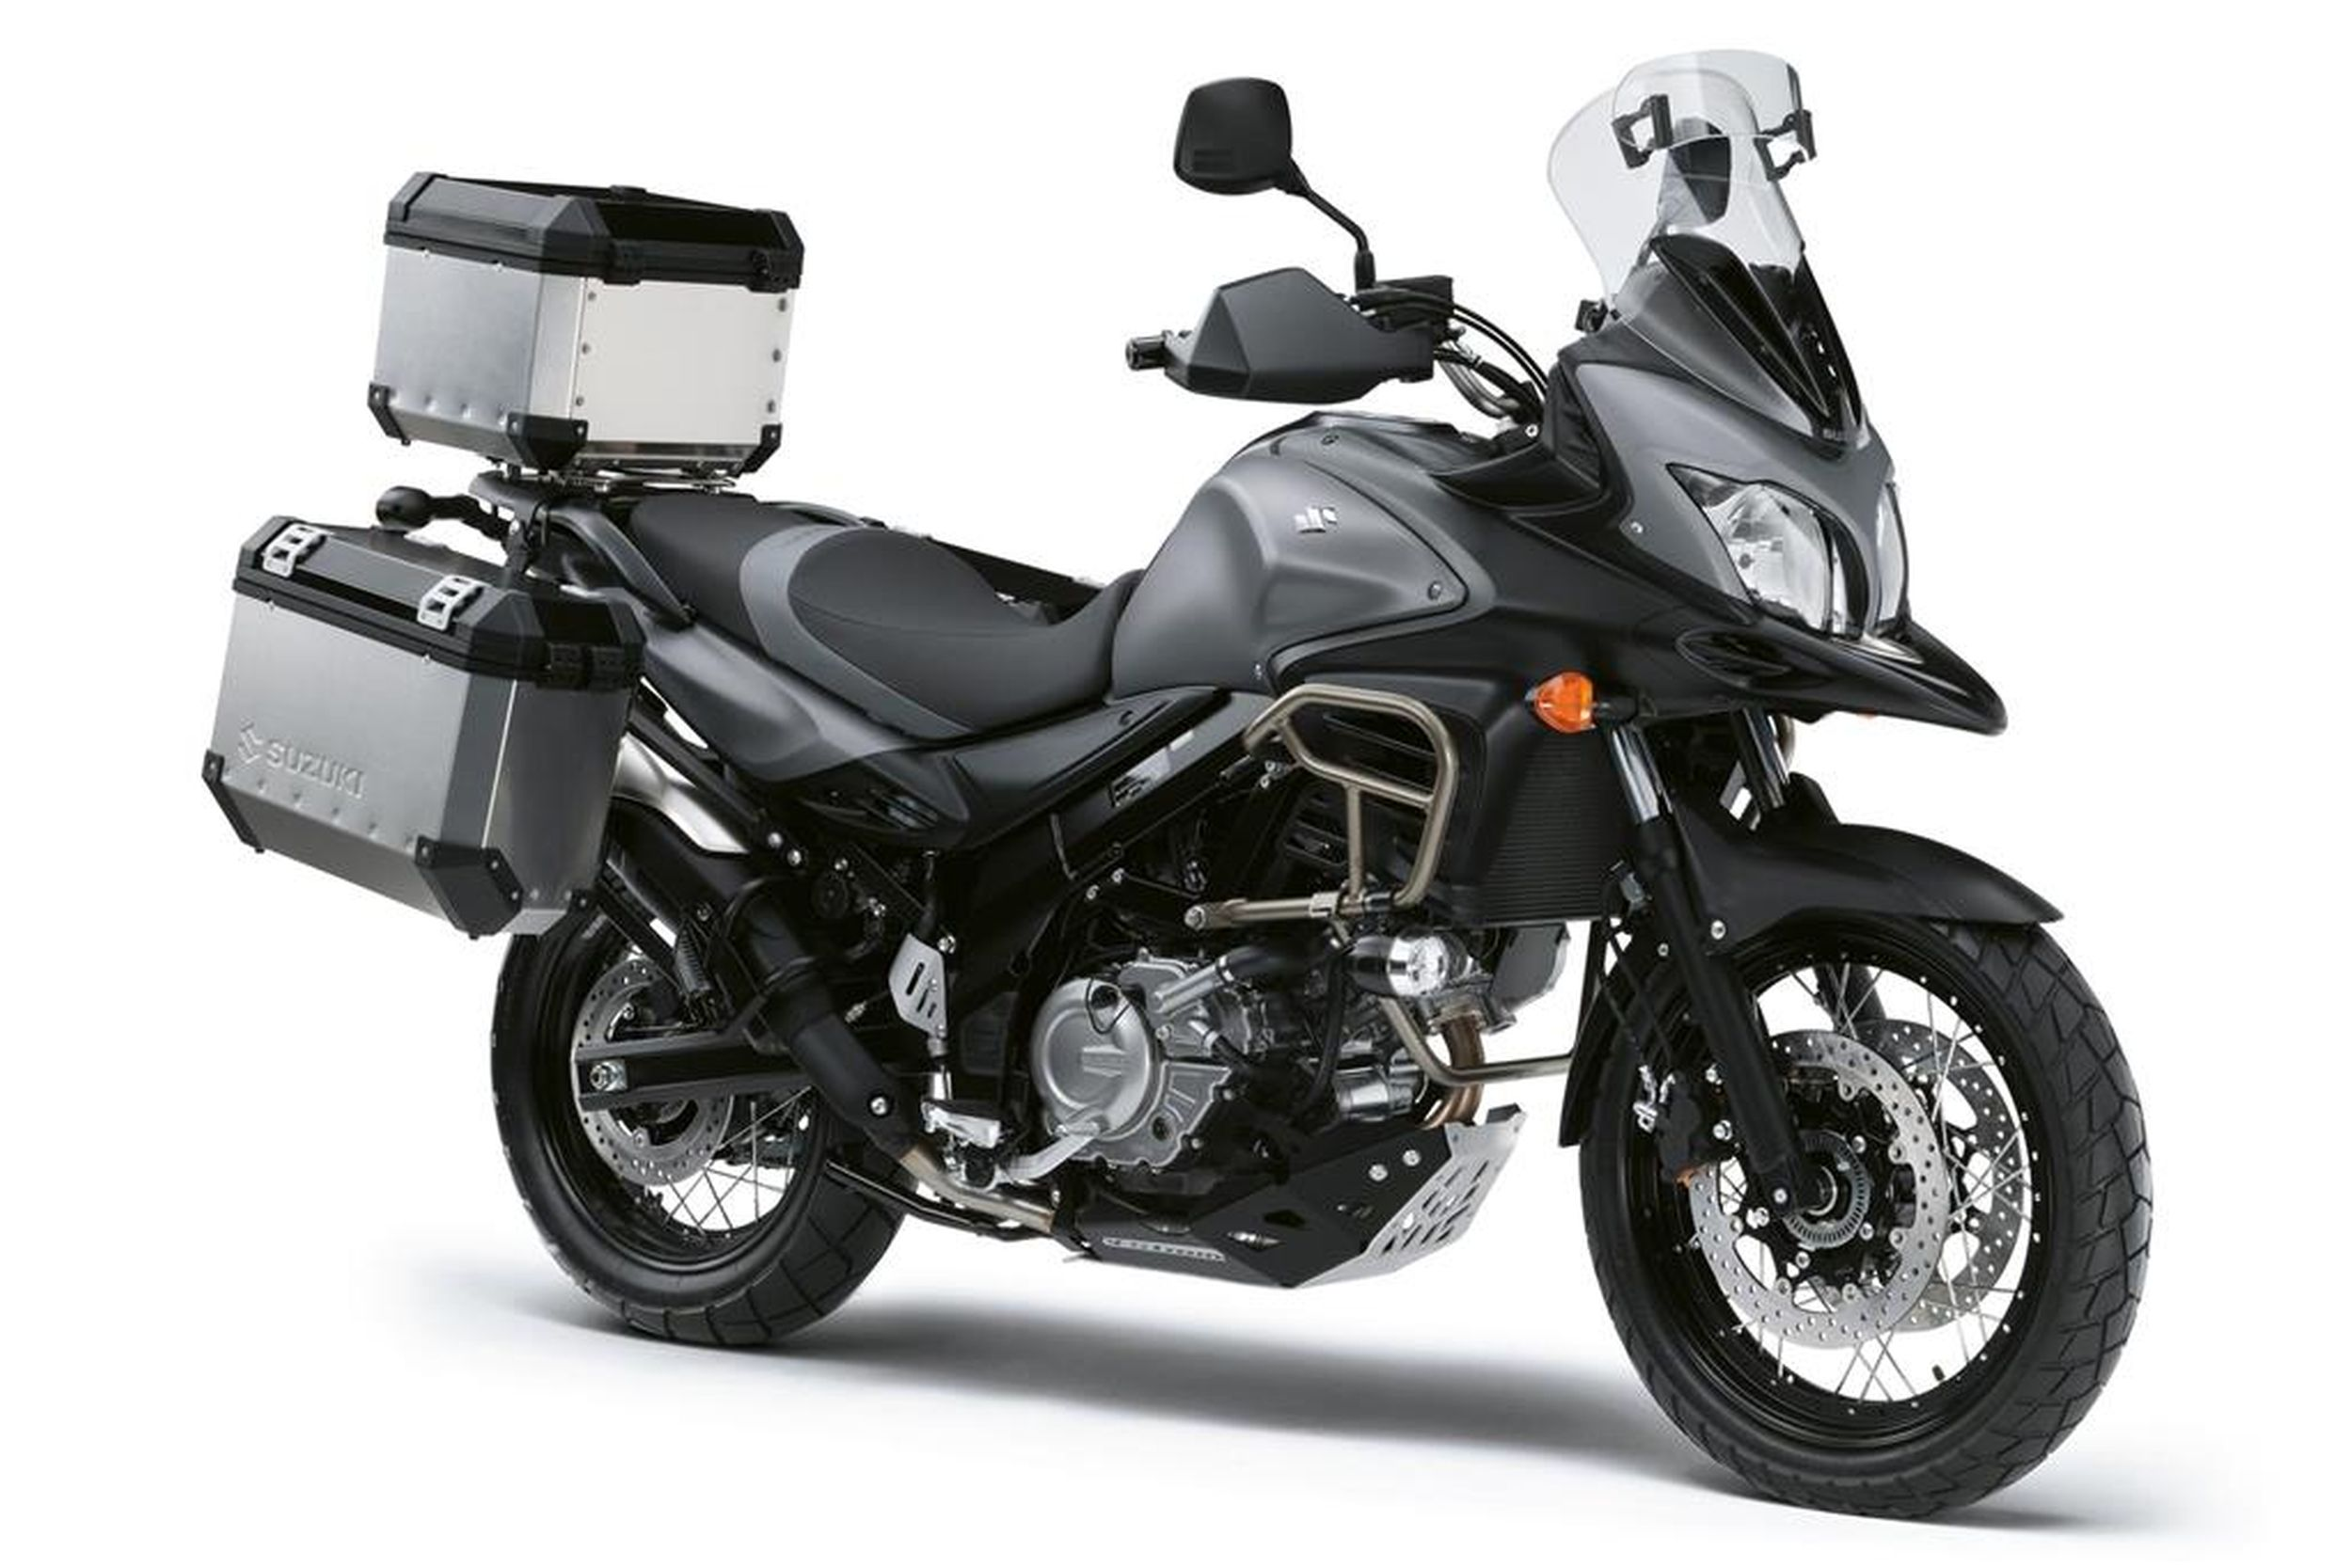 suzuki v strom 650 xt traveller alle technischen daten zum modell v strom 650 xt traveller von. Black Bedroom Furniture Sets. Home Design Ideas